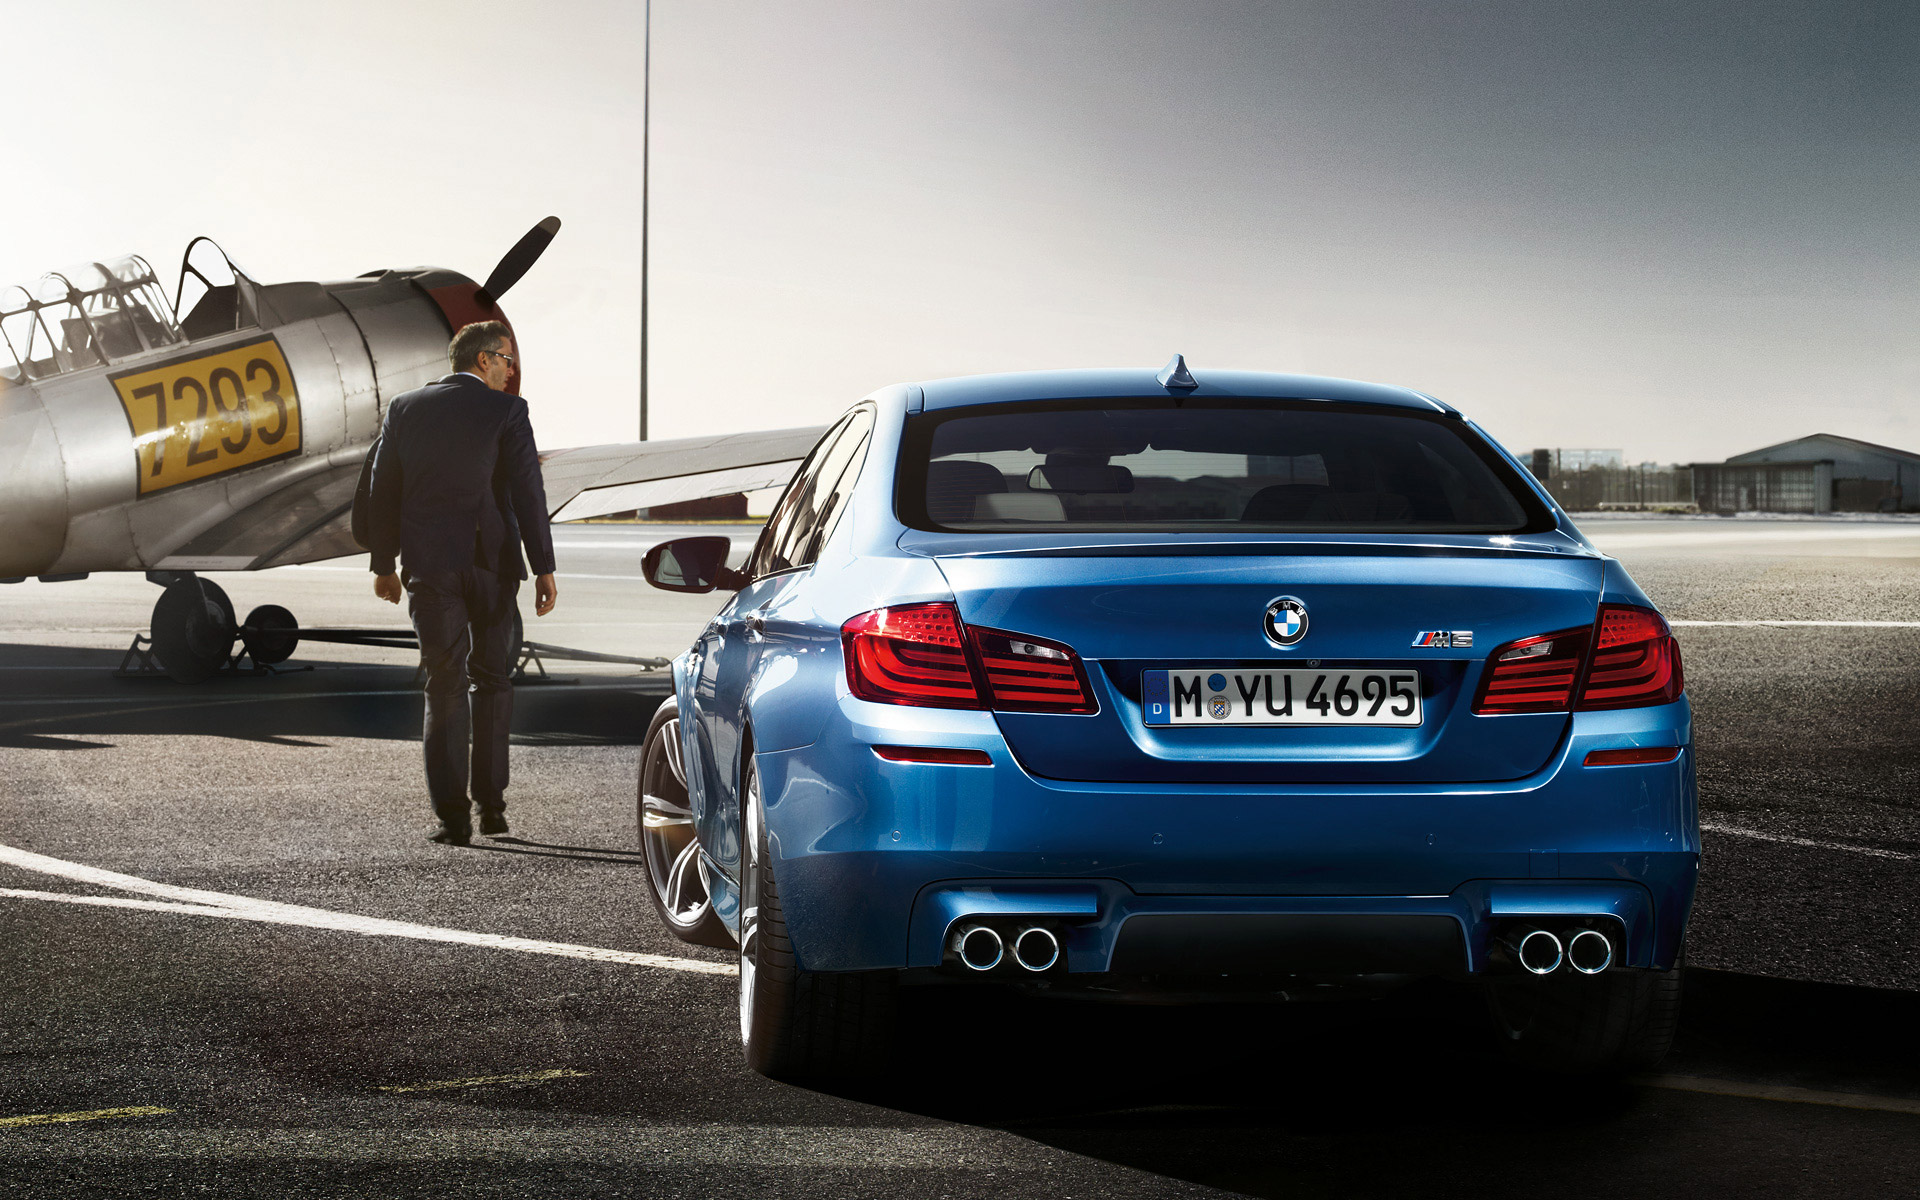 Interesting Bmw M5 HDQ Images Collection, HD Quality Wallpapers